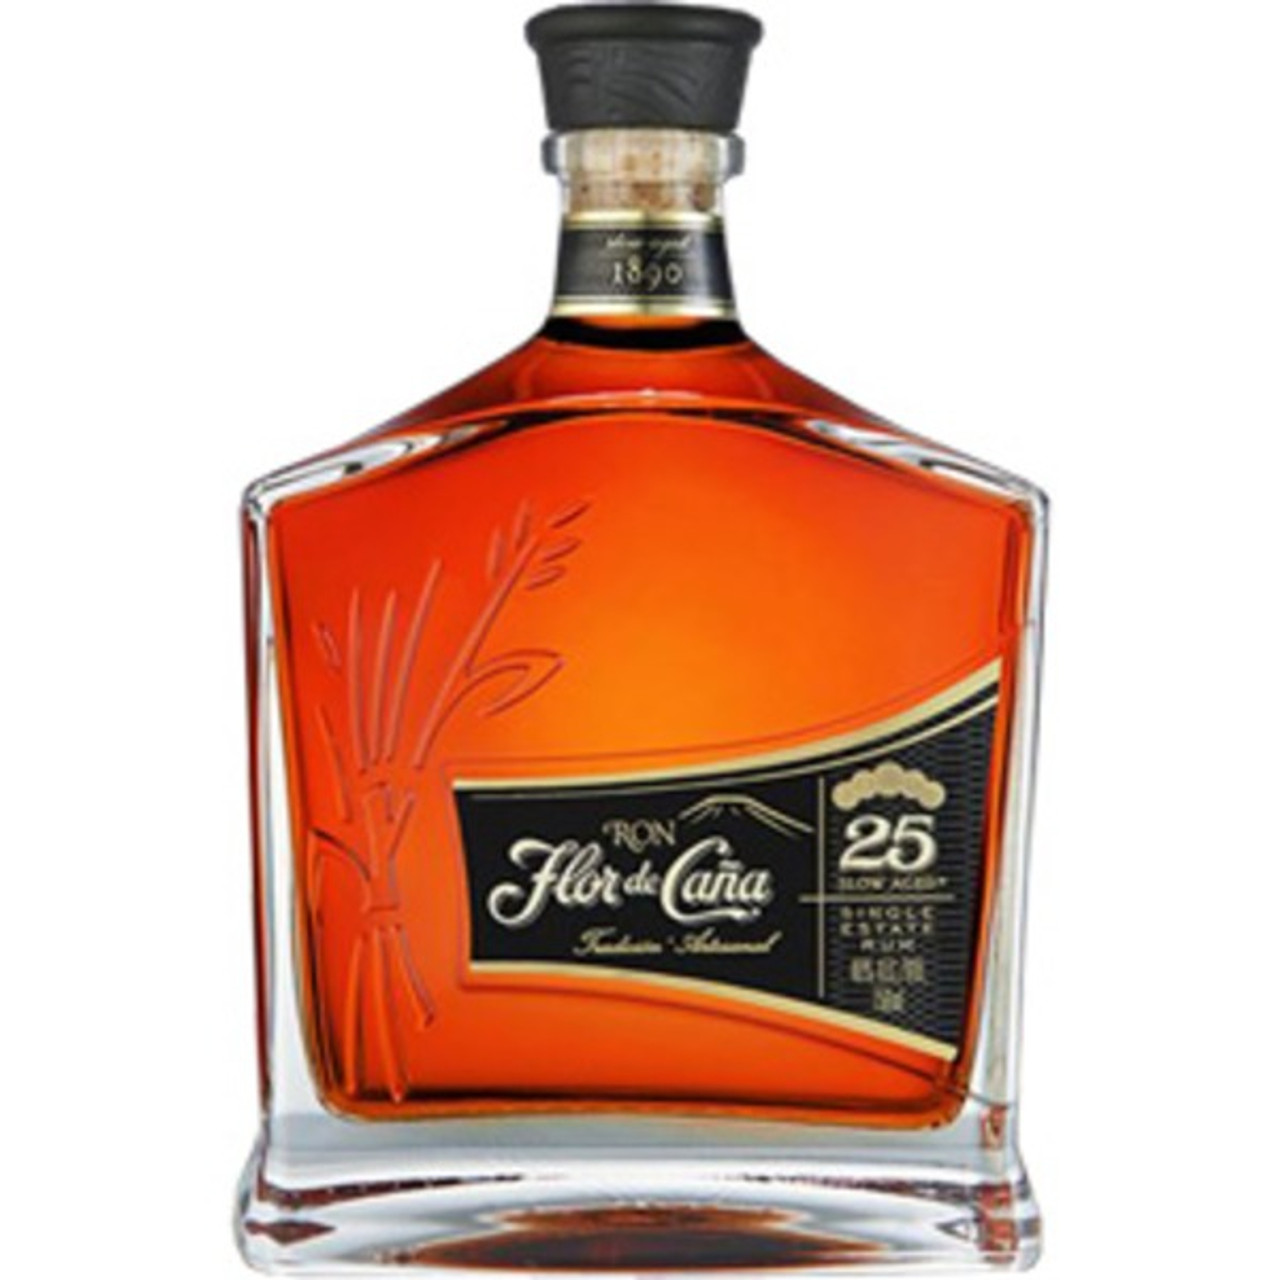 Flor De Cana 25 Year Rum 750ml